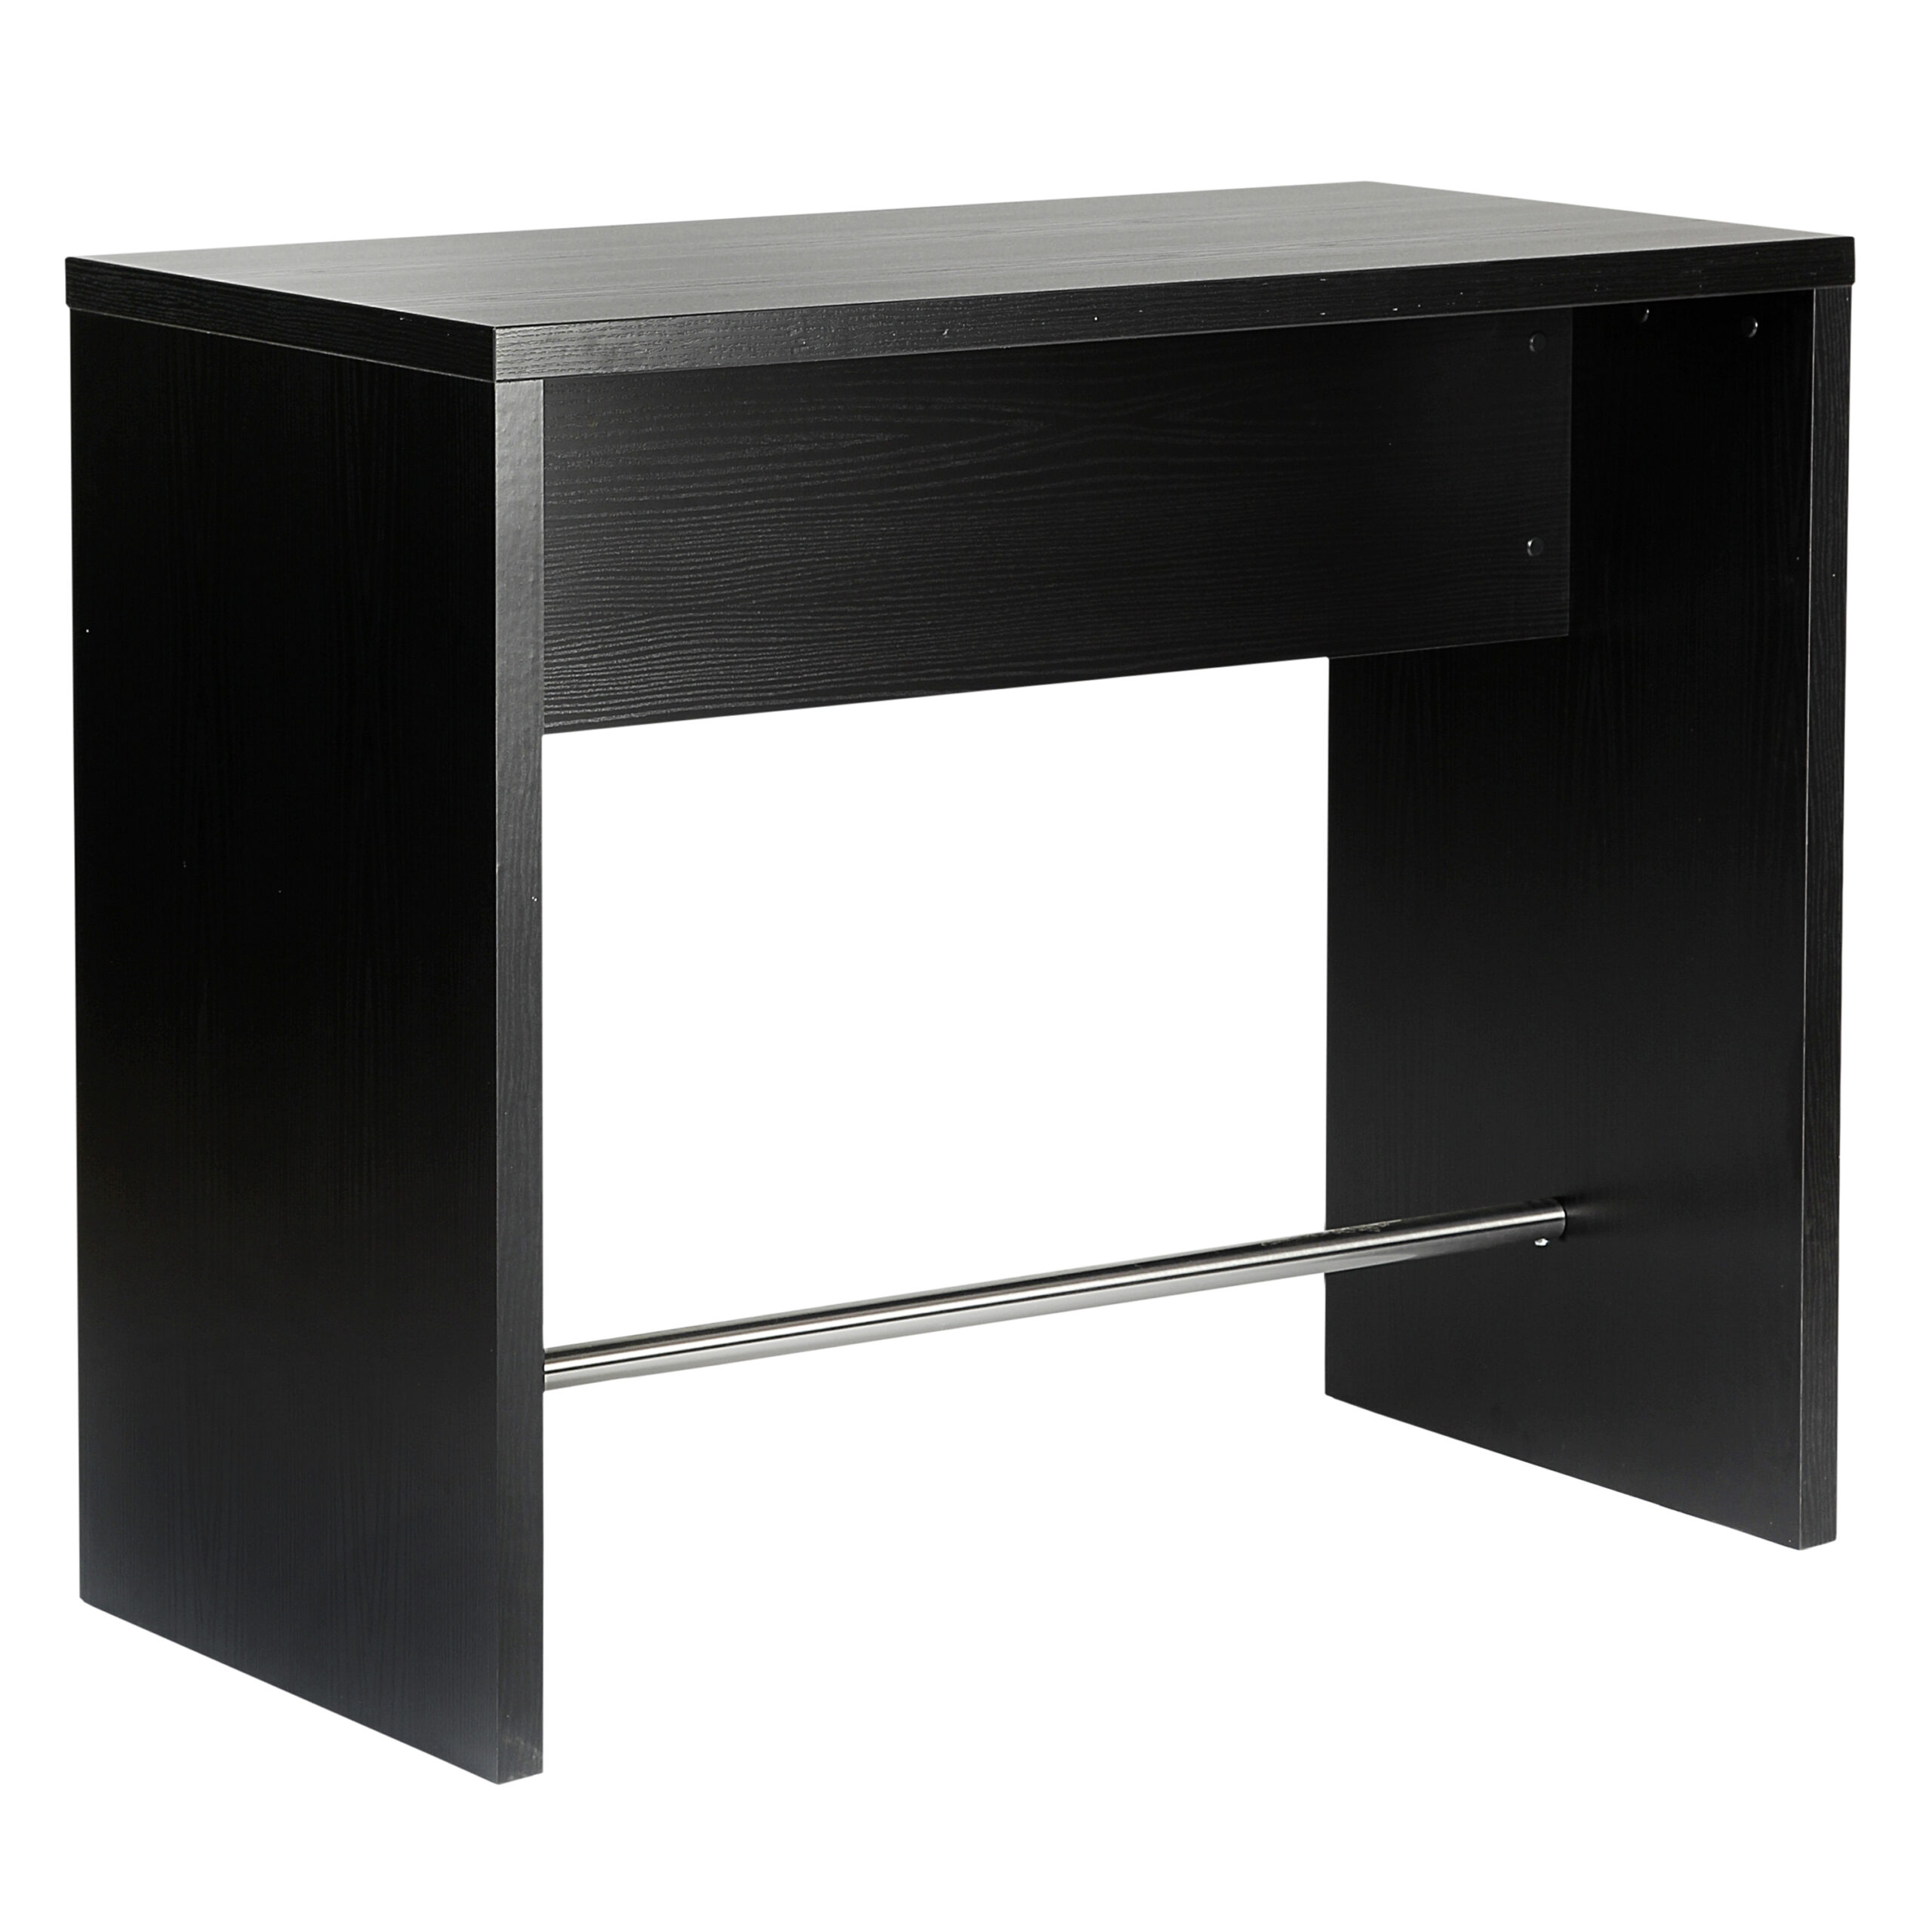 Copac Danish Made Black Home Bar Black